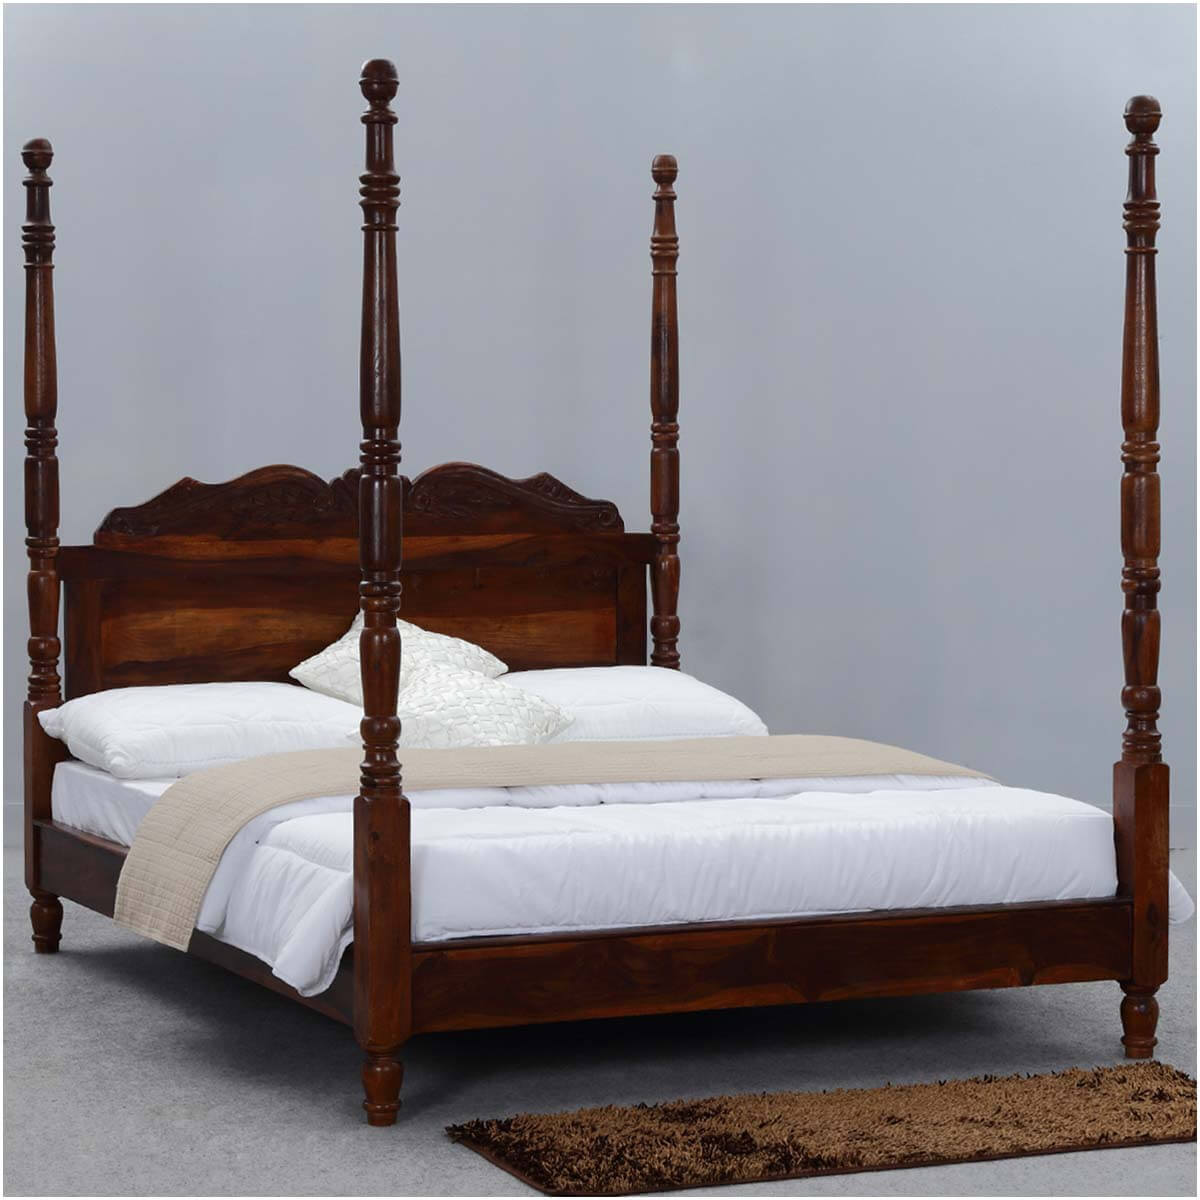 queen anne solid wood four poster platform bed frame w headboard. Black Bedroom Furniture Sets. Home Design Ideas